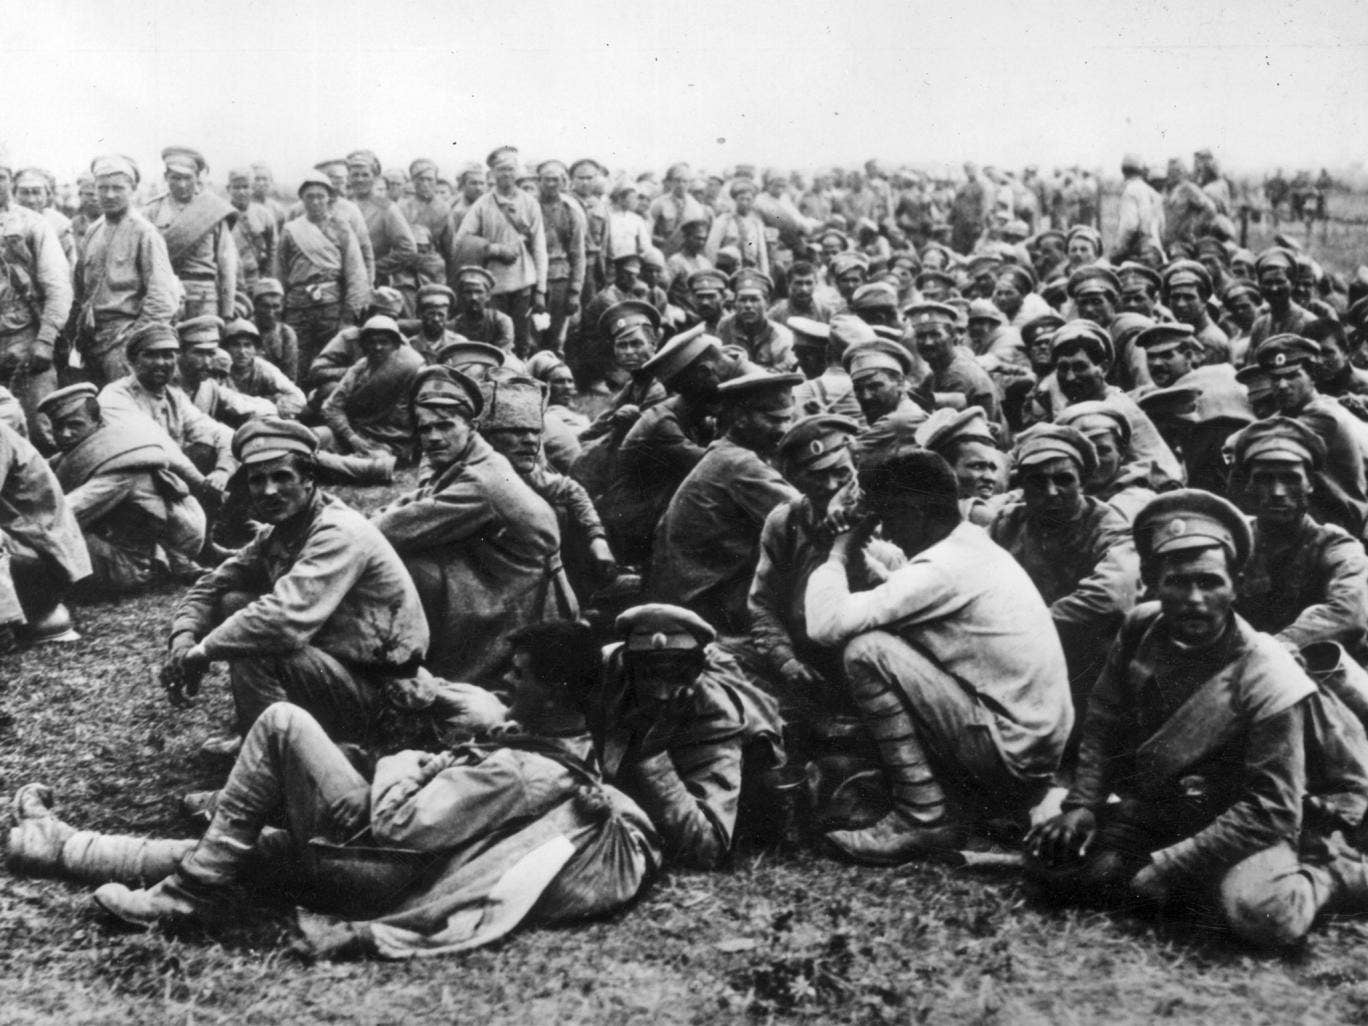 Captured soldiers of the Russian 2nd Army after their defeat at the Battle of Tannenberg